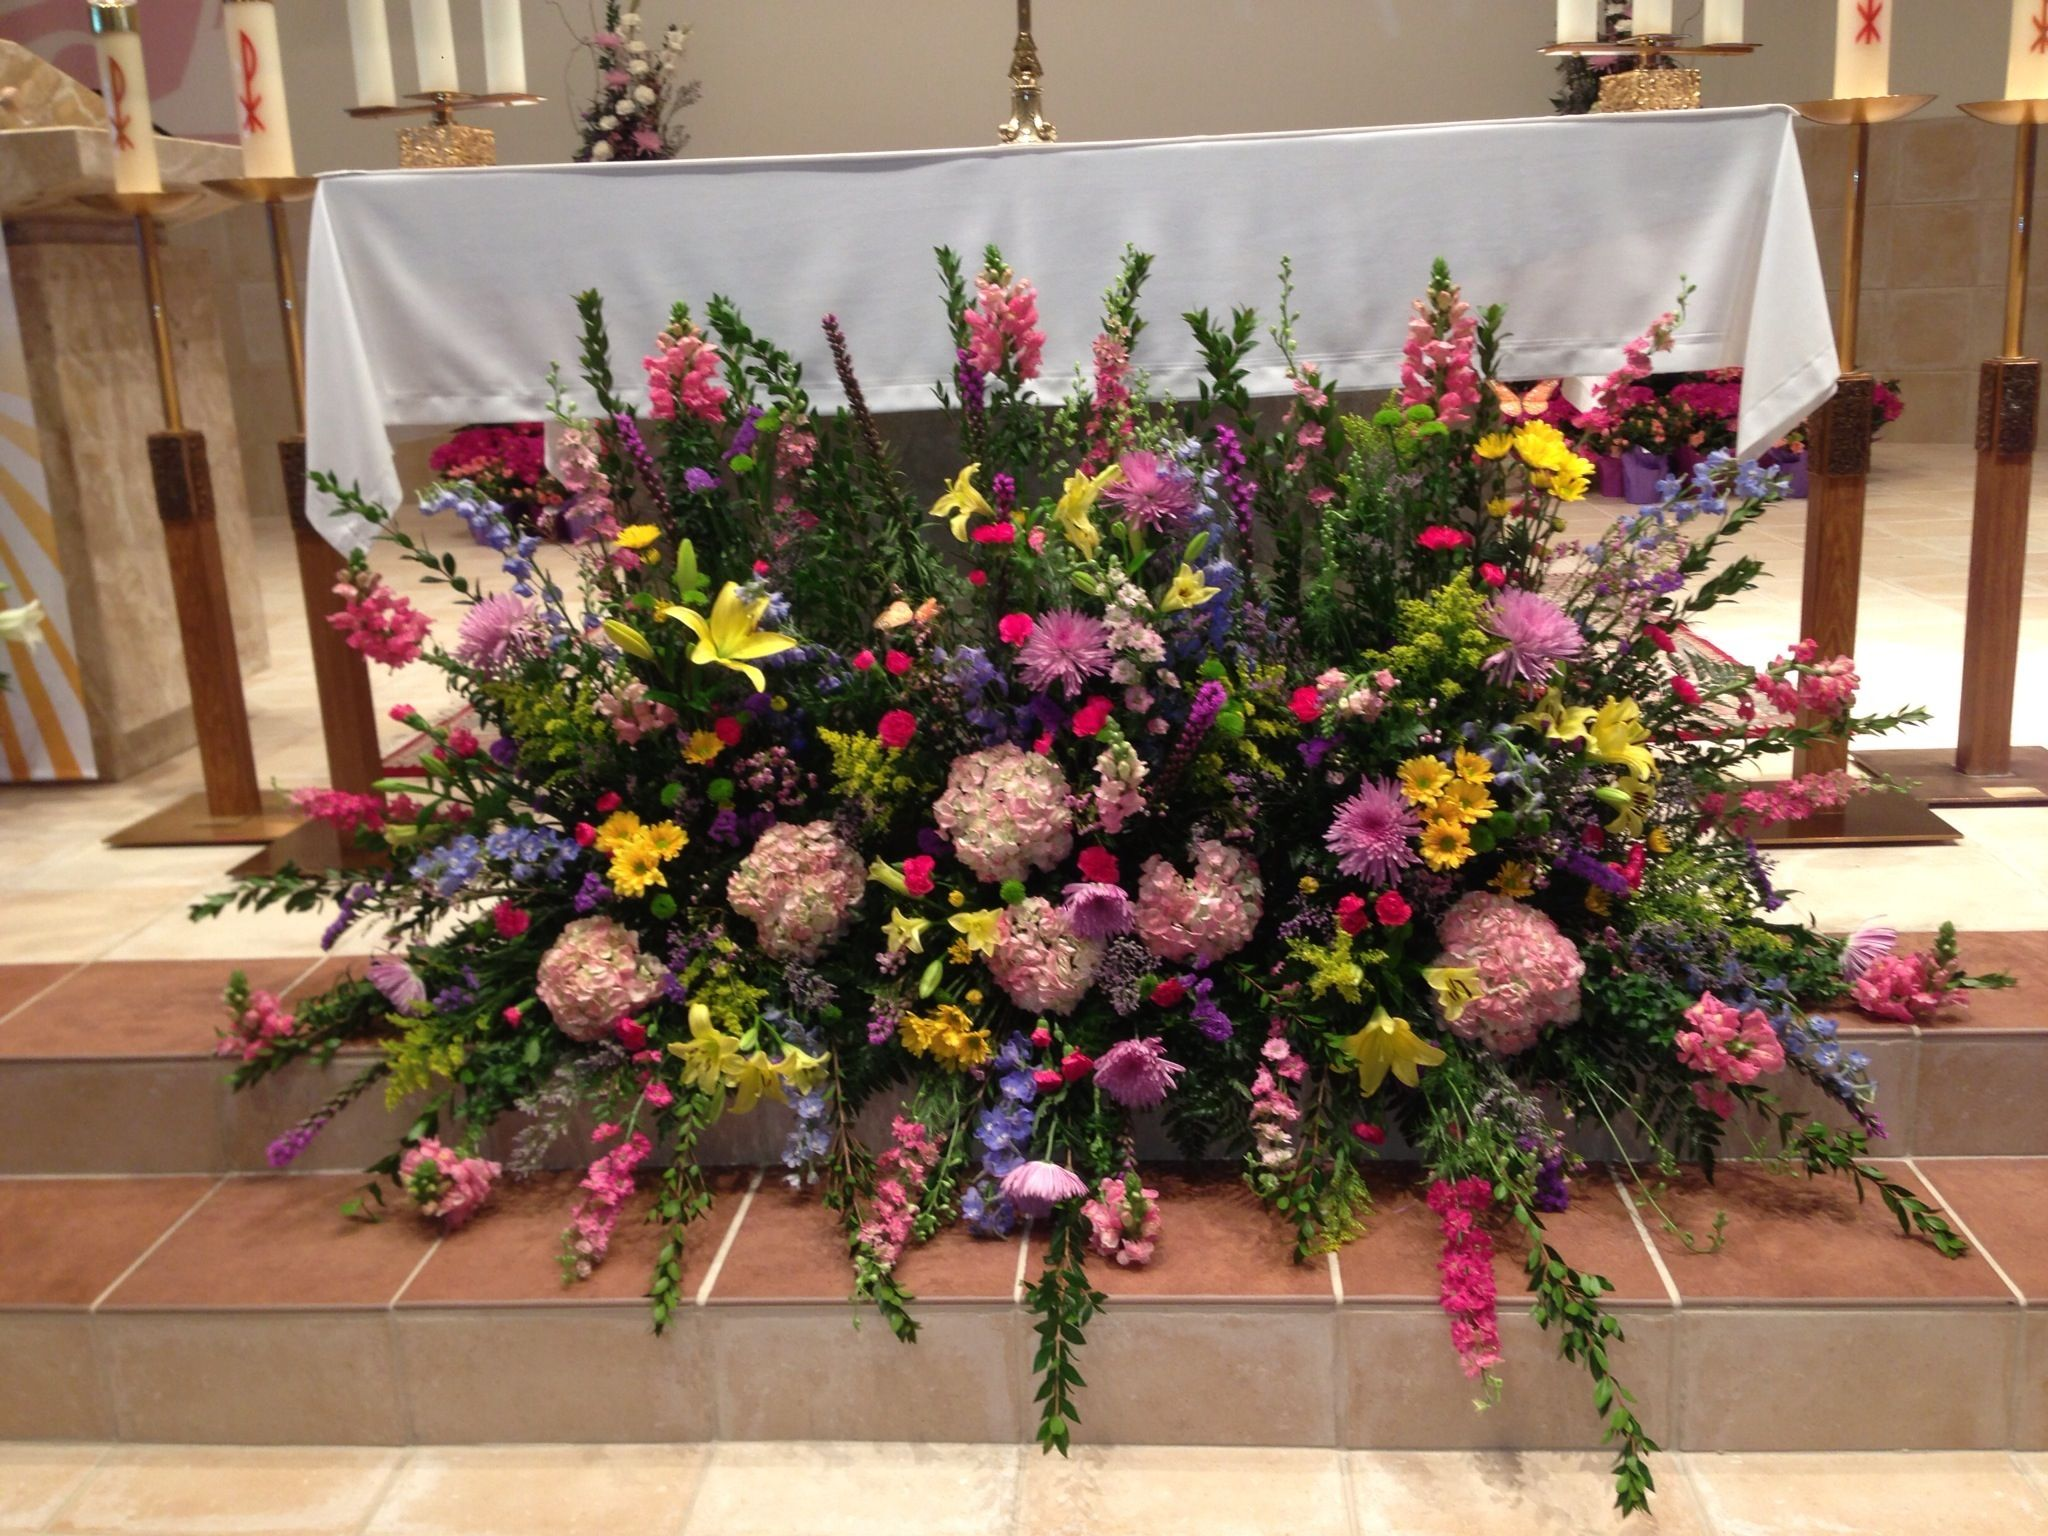 Easter sunday flowers at prince of peace catholic church flower easter sunday flowers at prince of peace catholic church izmirmasajfo